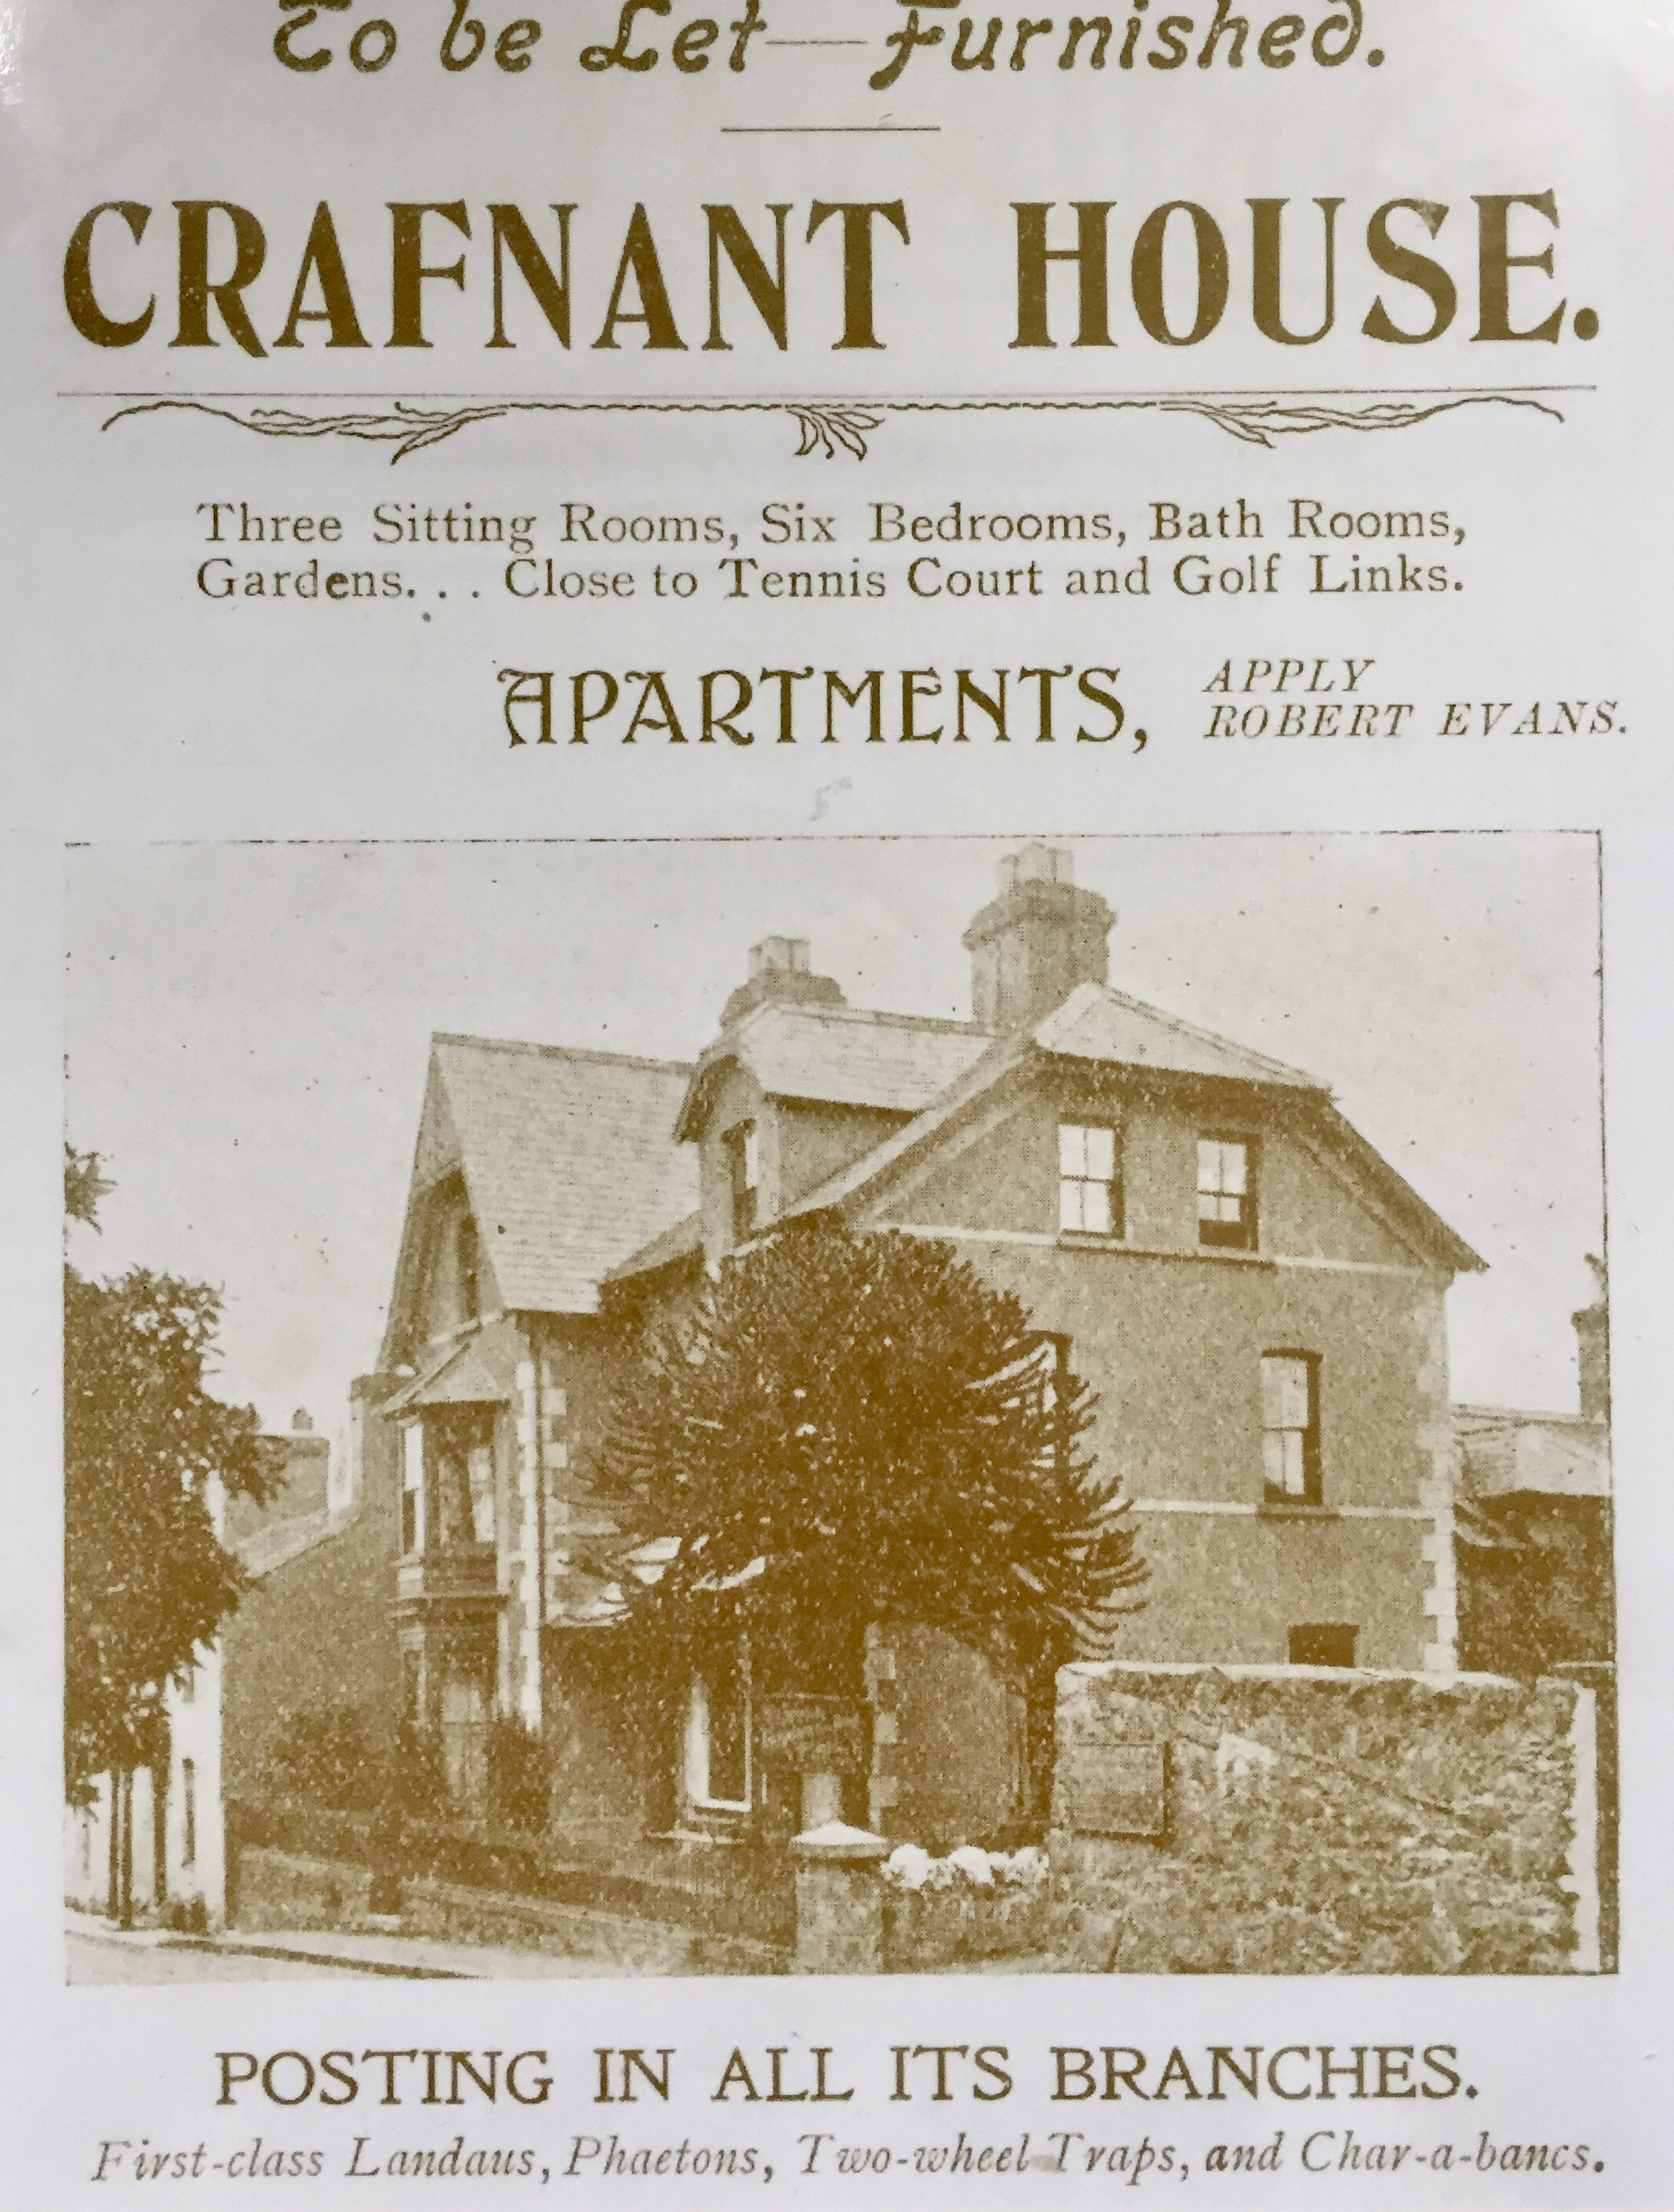 "- The new owner, Robert Evans, advertised Crafnant House as holiday apartments in 1907, and was also a garage proprietor who ""made arrangements to meet the steamers at the… landing stage with a Charabanc, also Waggonettes, Landaus etc, to convey passengers to Betws-y-Coed, Swallow Falls, Crafnant Lake, or any other places""…..!The garage and associated buildings remained in place until the late 1990s when the previous owner demolished them (with ease apparently!) and created the beautiful garden that is now present."